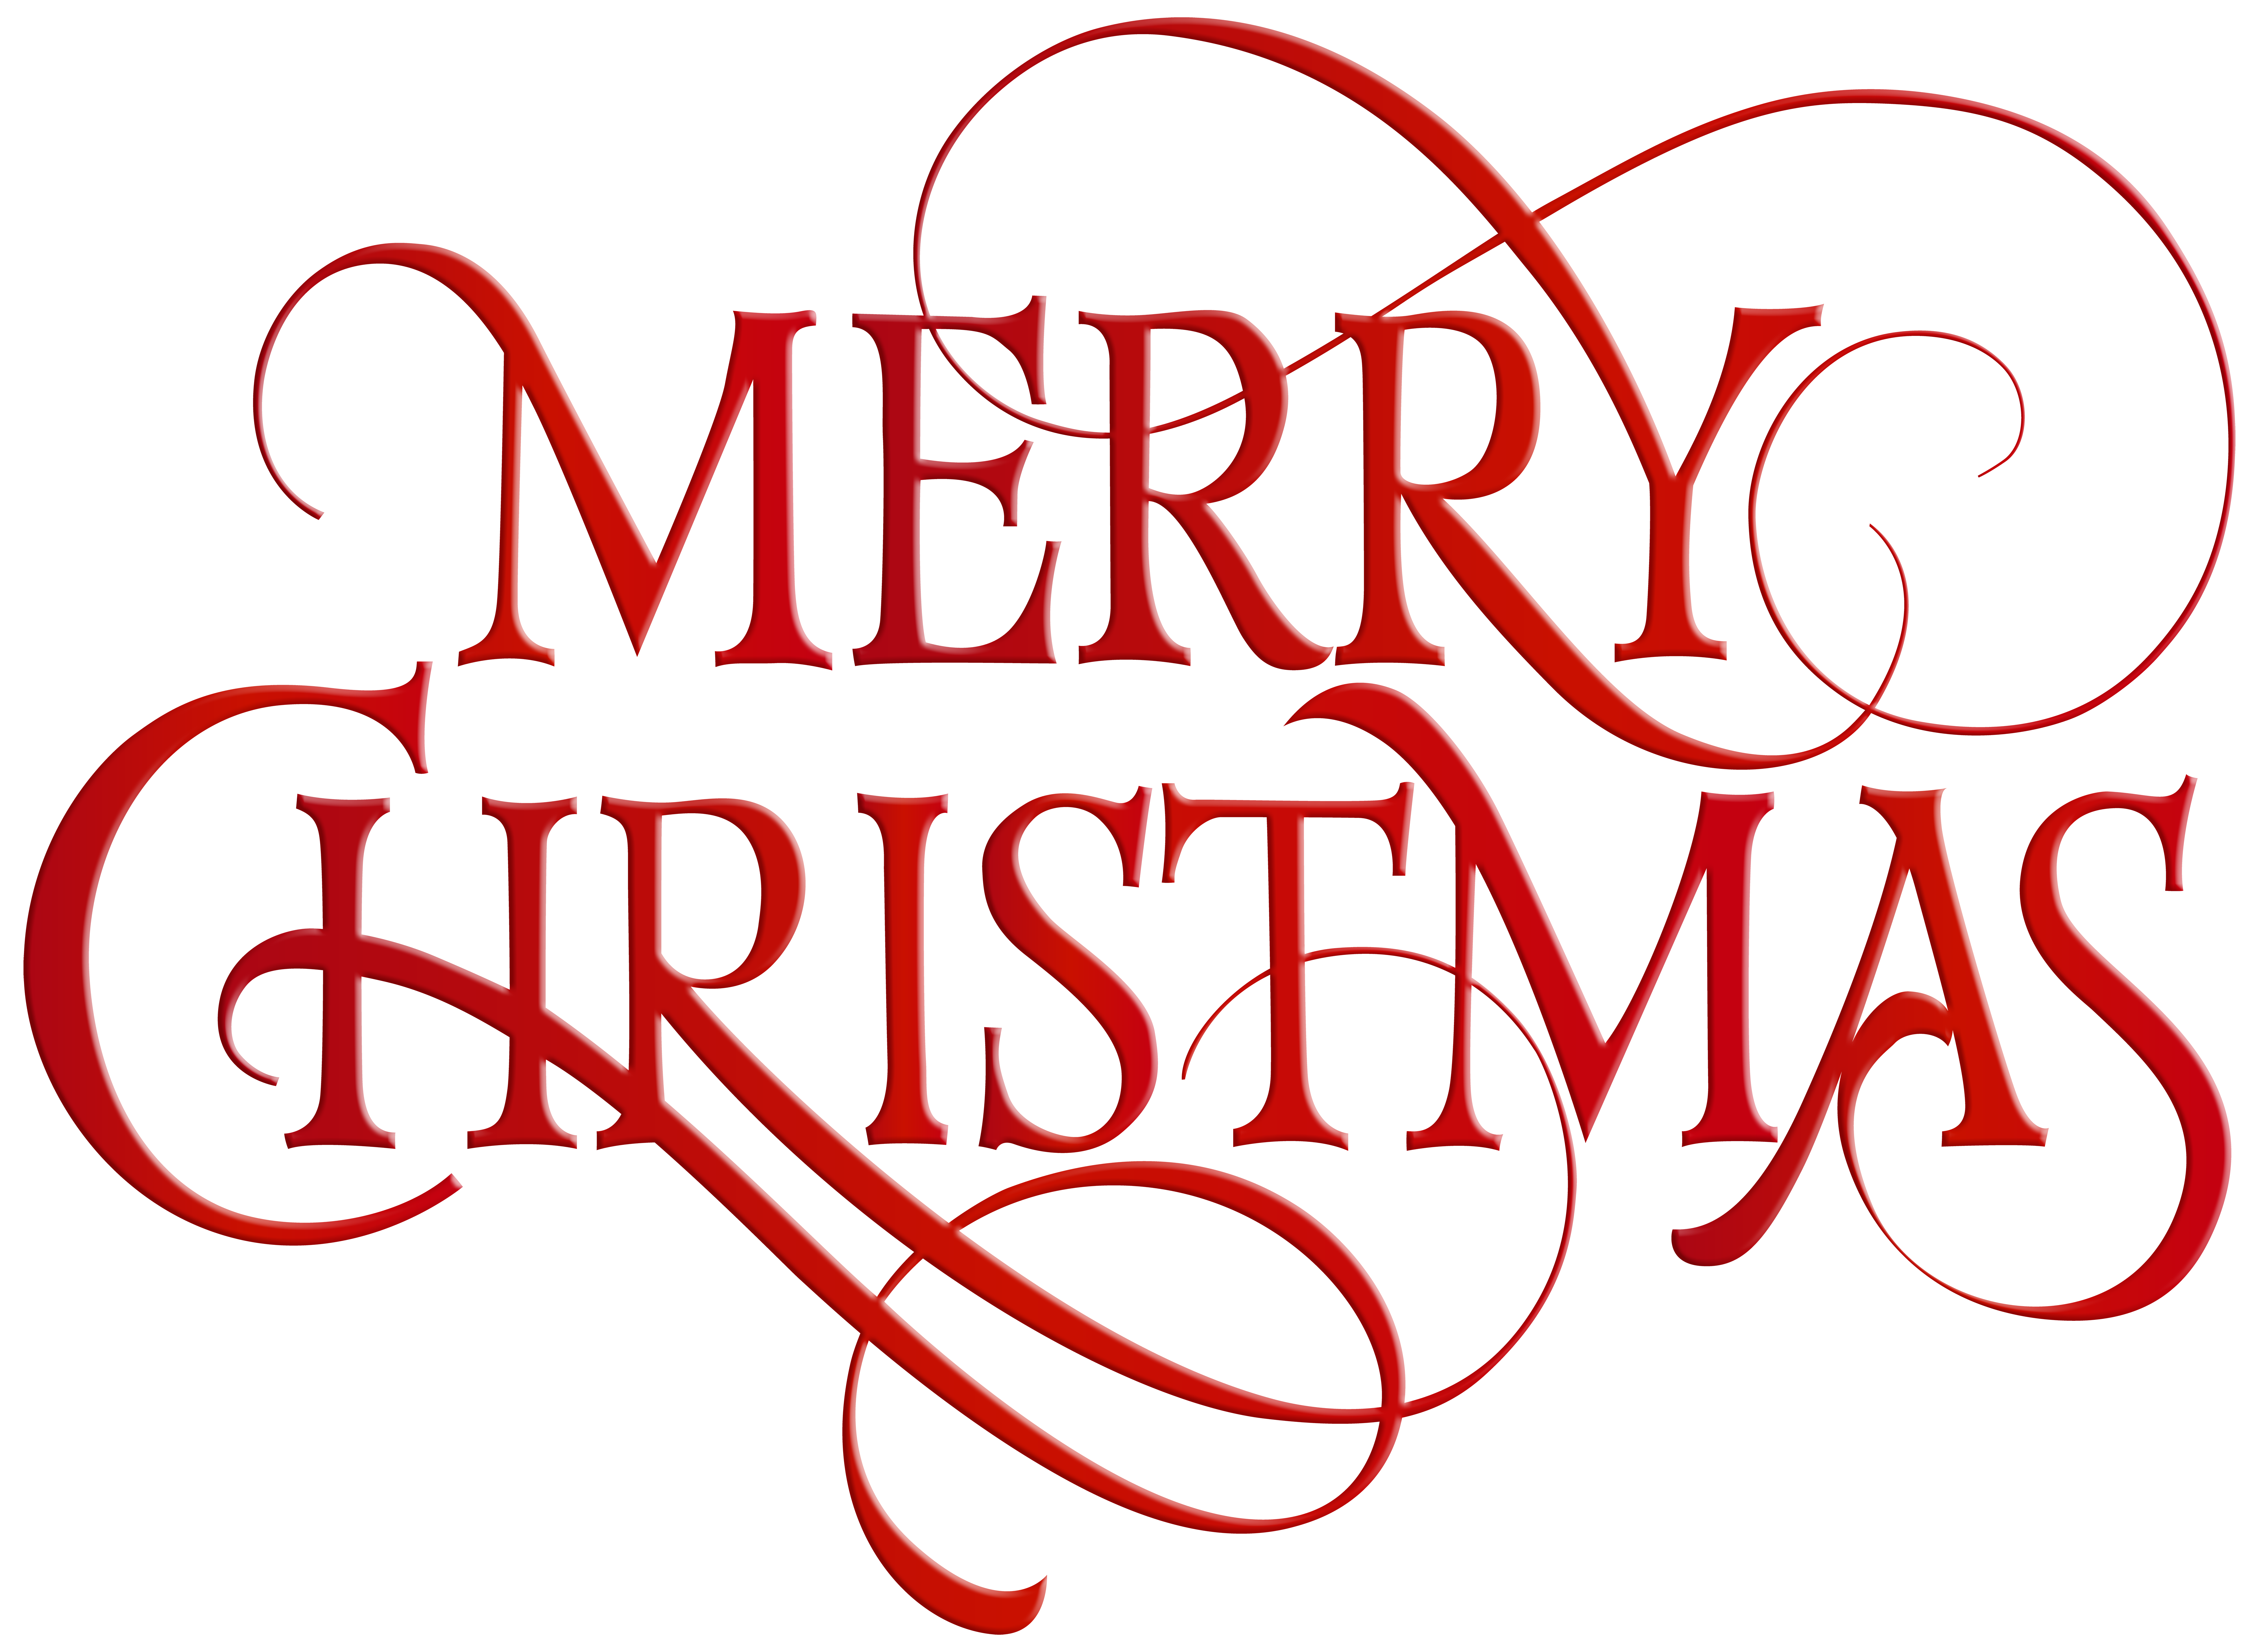 Christmas clipart fonts clipart freeuse library Merry Christmas Clip Art | Free Download Clip Art | Free Clip Art ... clipart freeuse library